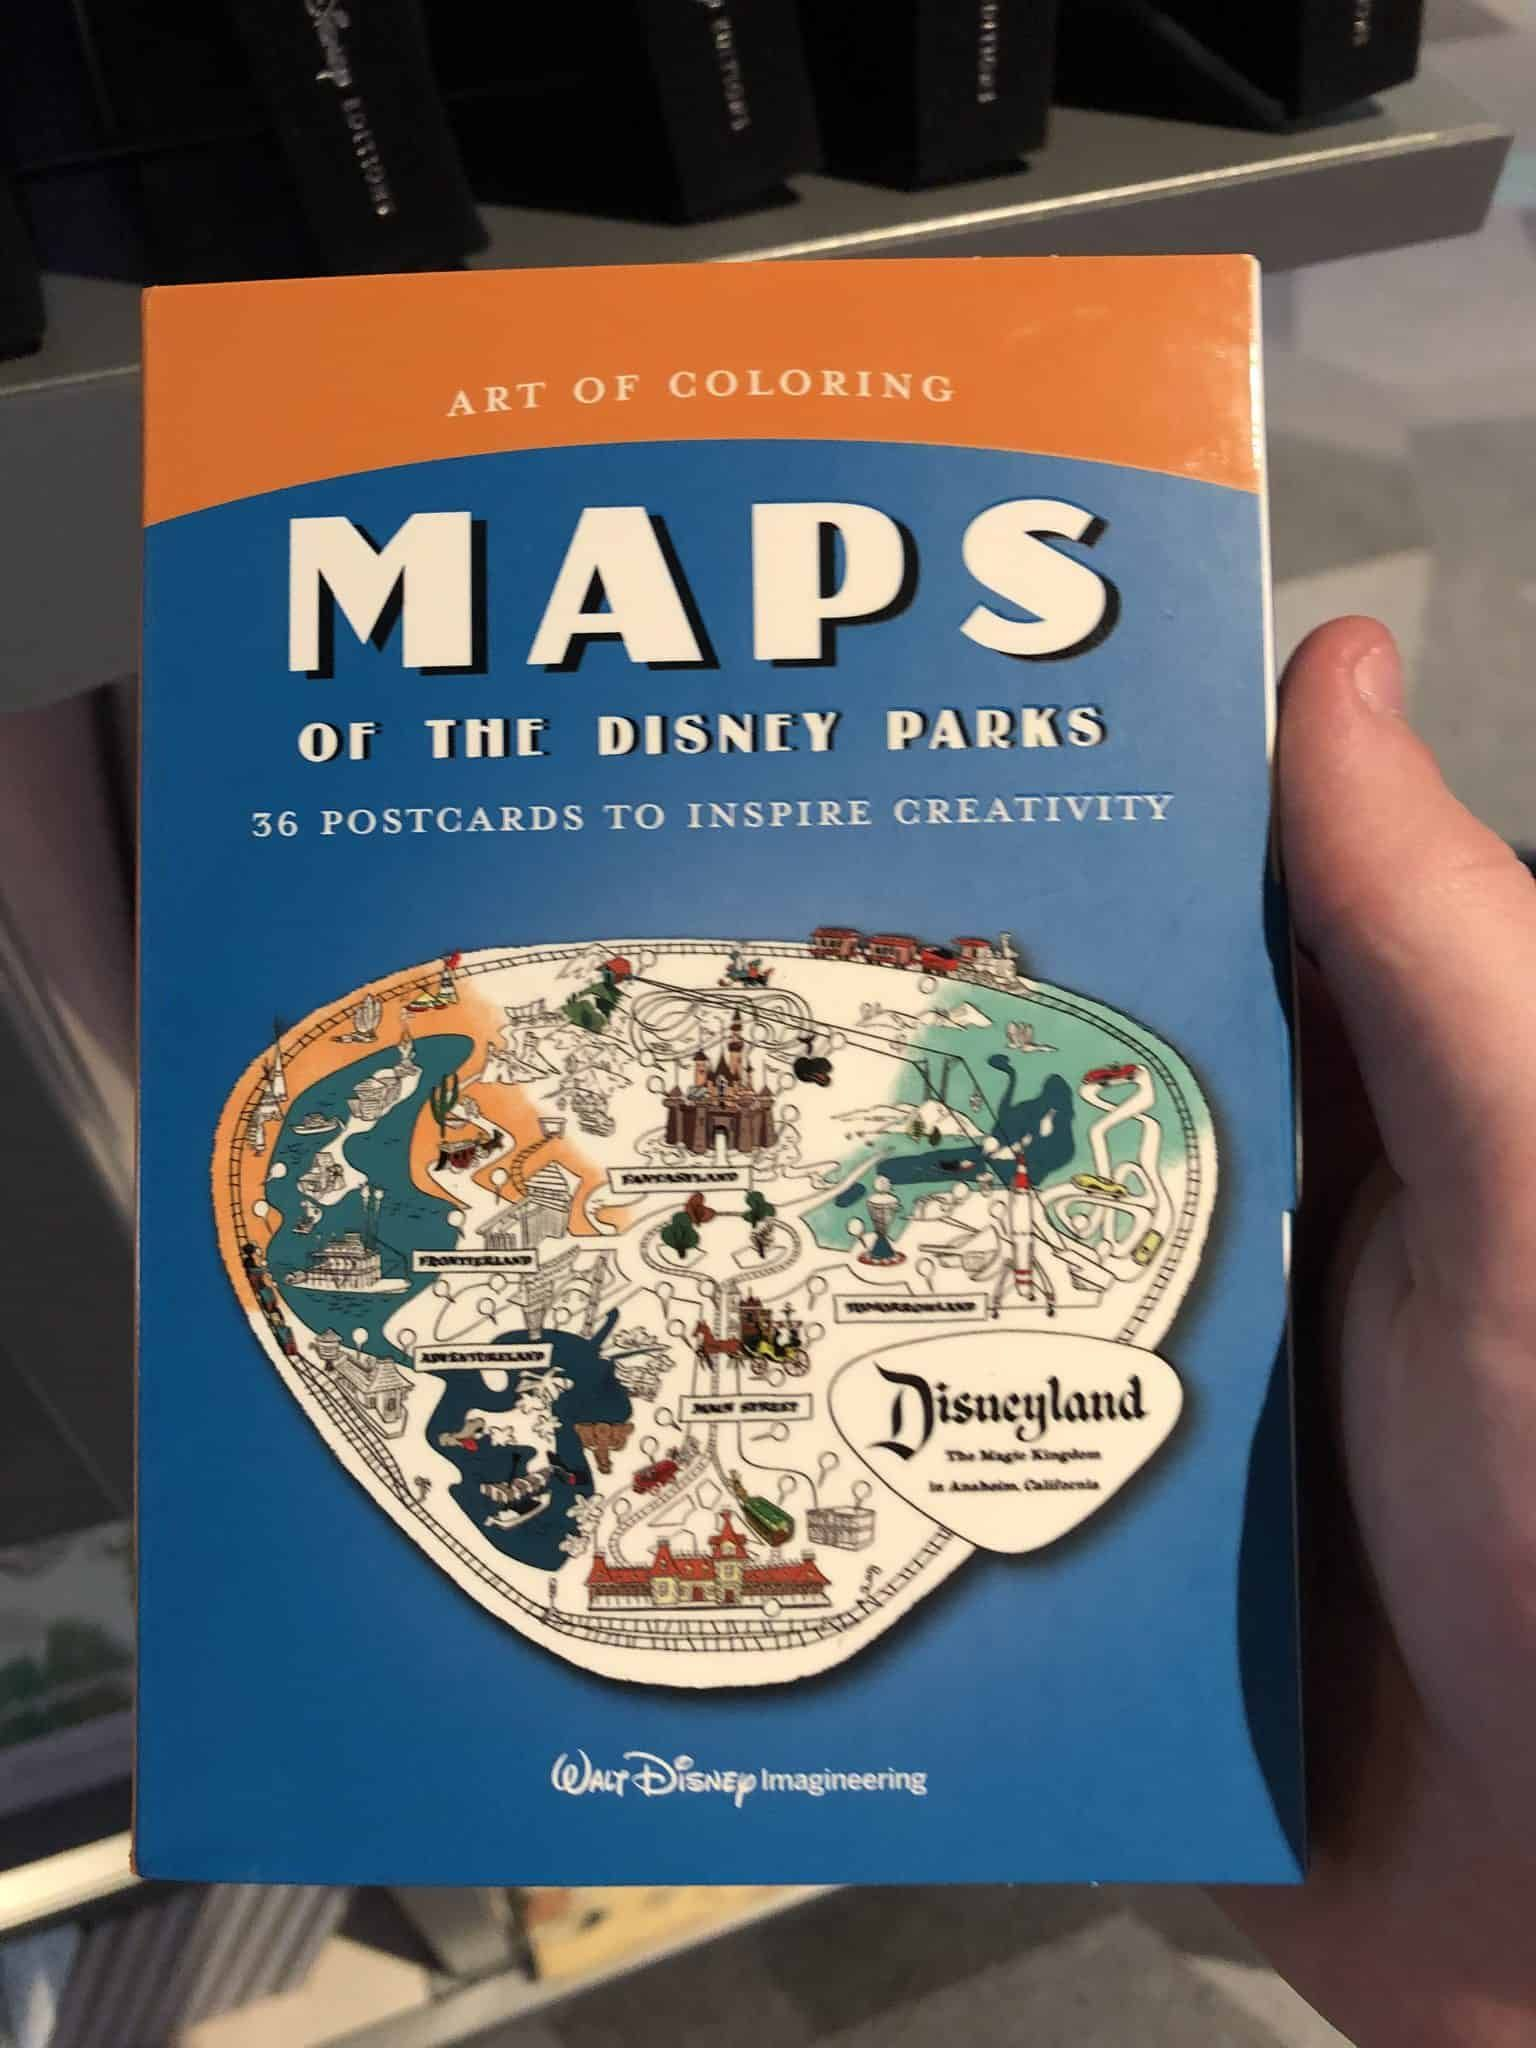 Photos Poster Art Of The Disney Parks And Maps Of The Disney Parks Coloring Books Arrive At Epcot Wdw News Today Coloring Books Disney Parks Poster Art